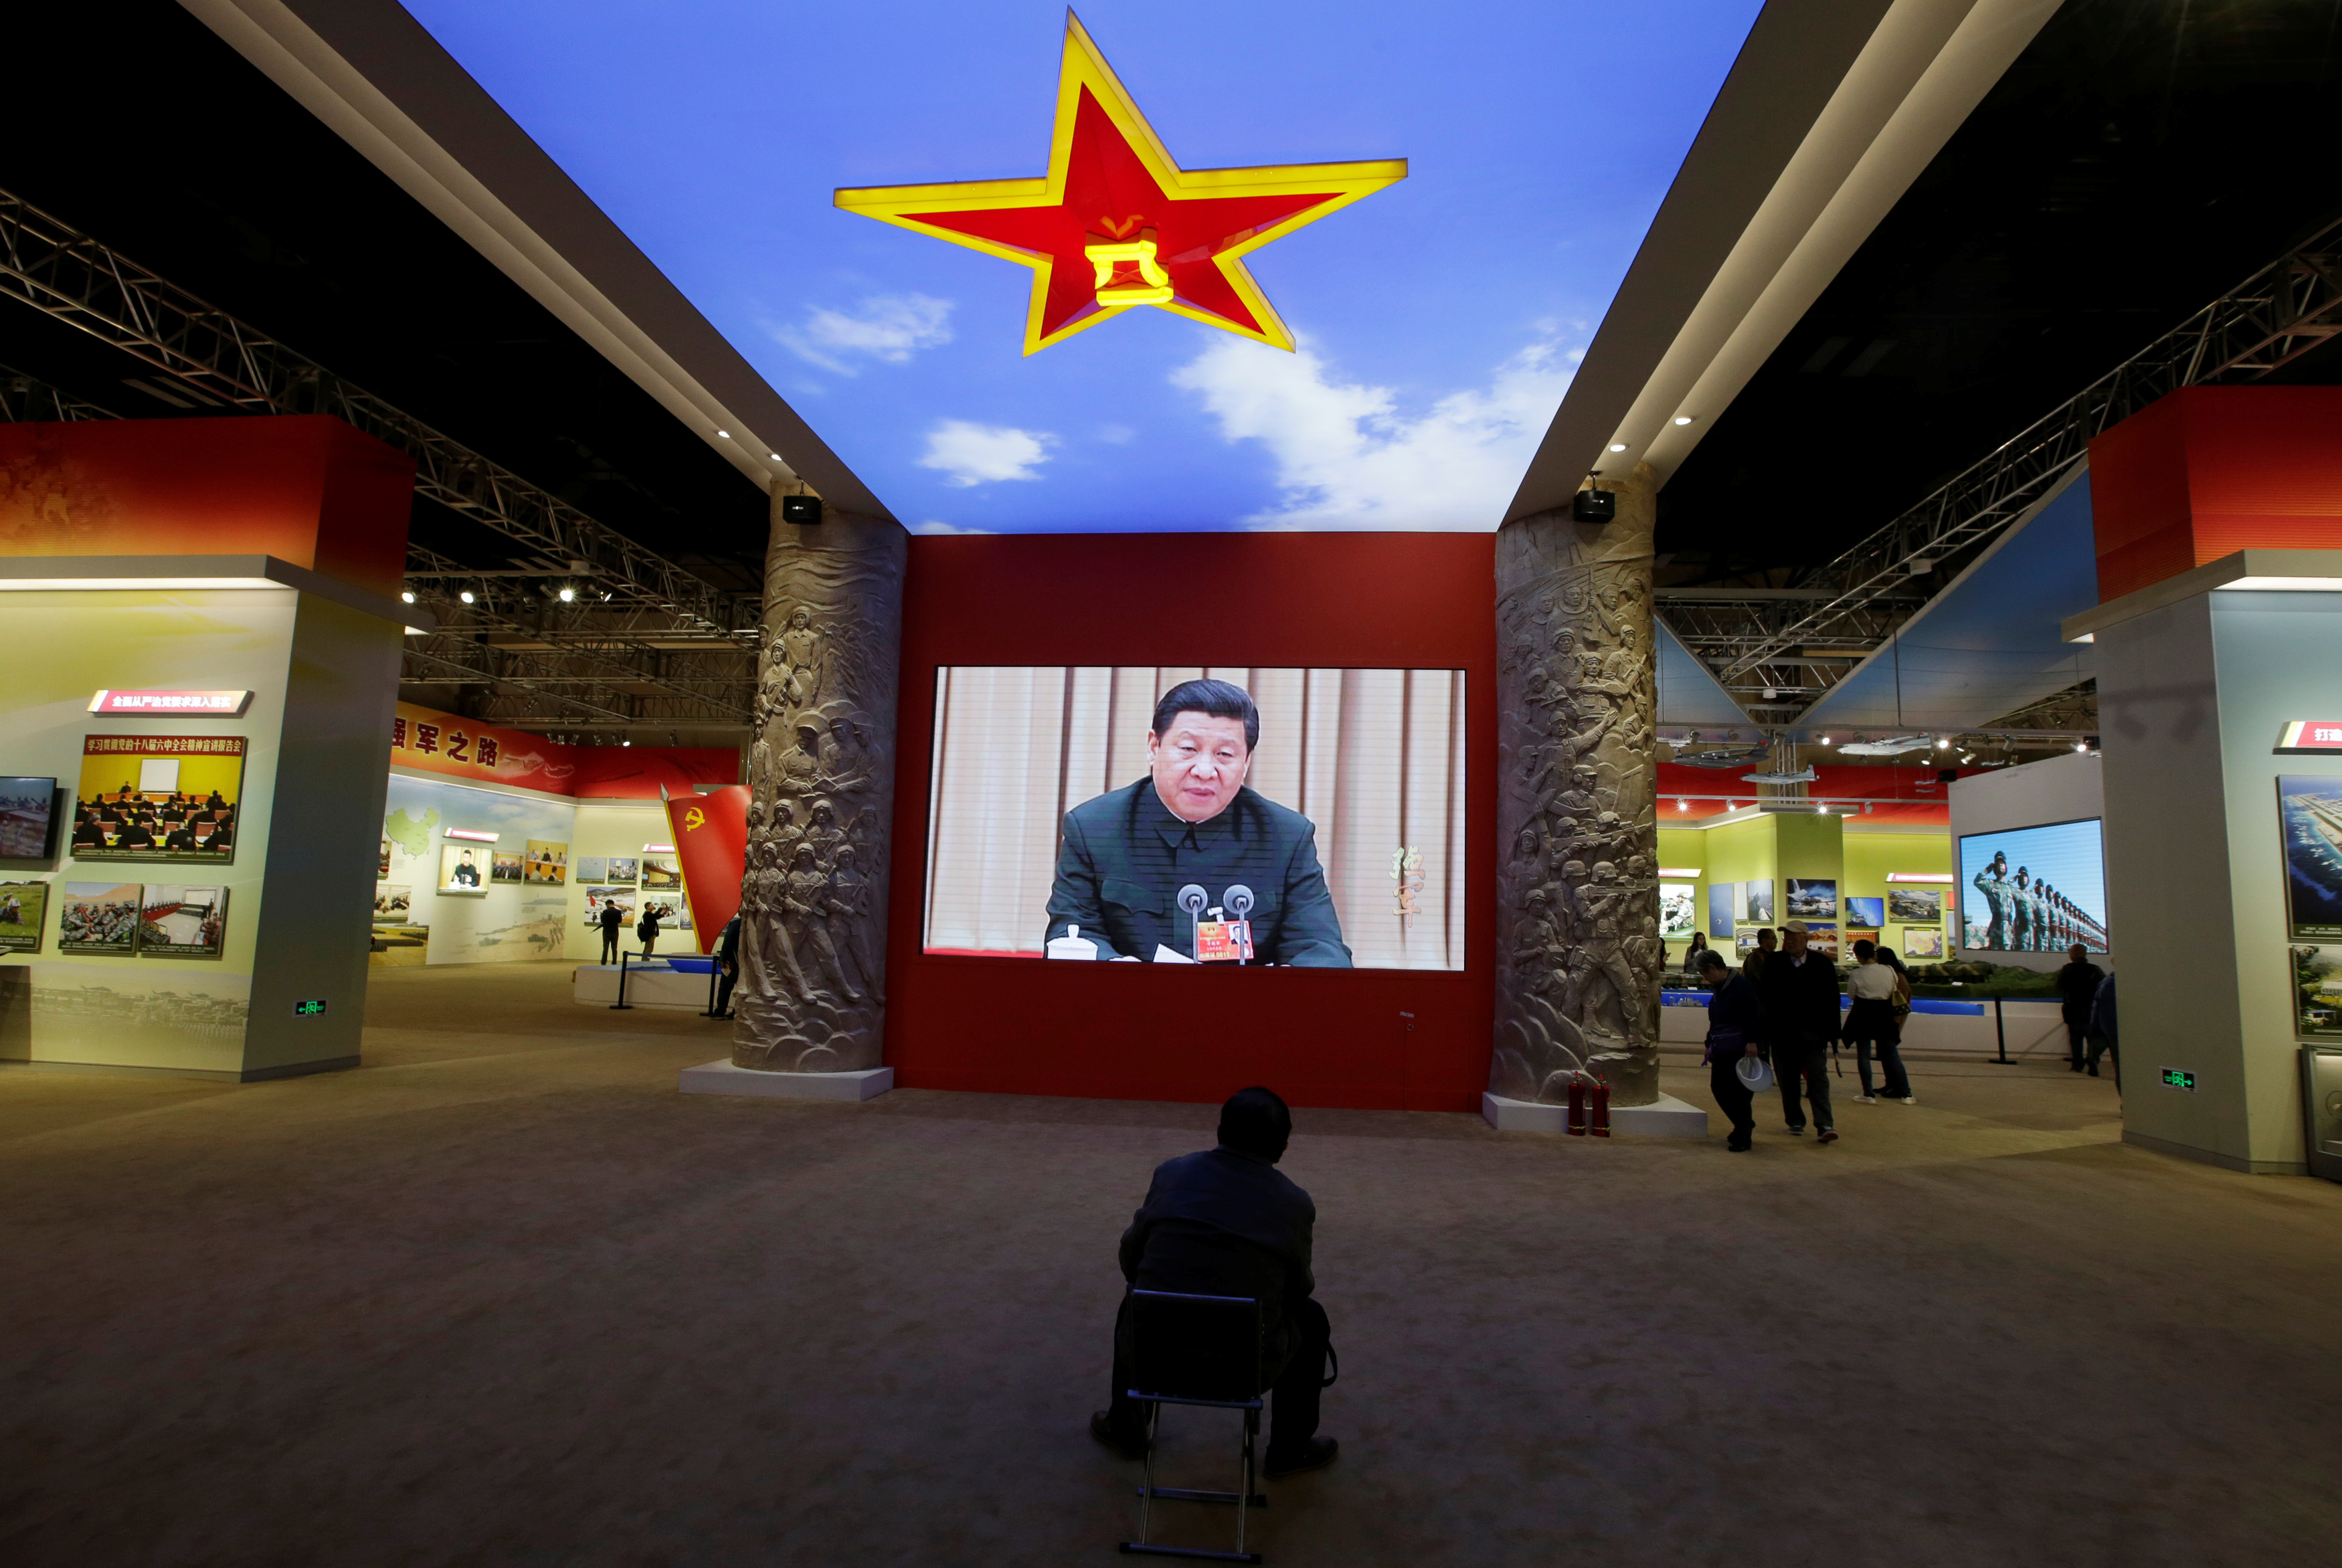 A visitor watches a video showing Chinese President Xi Jinping